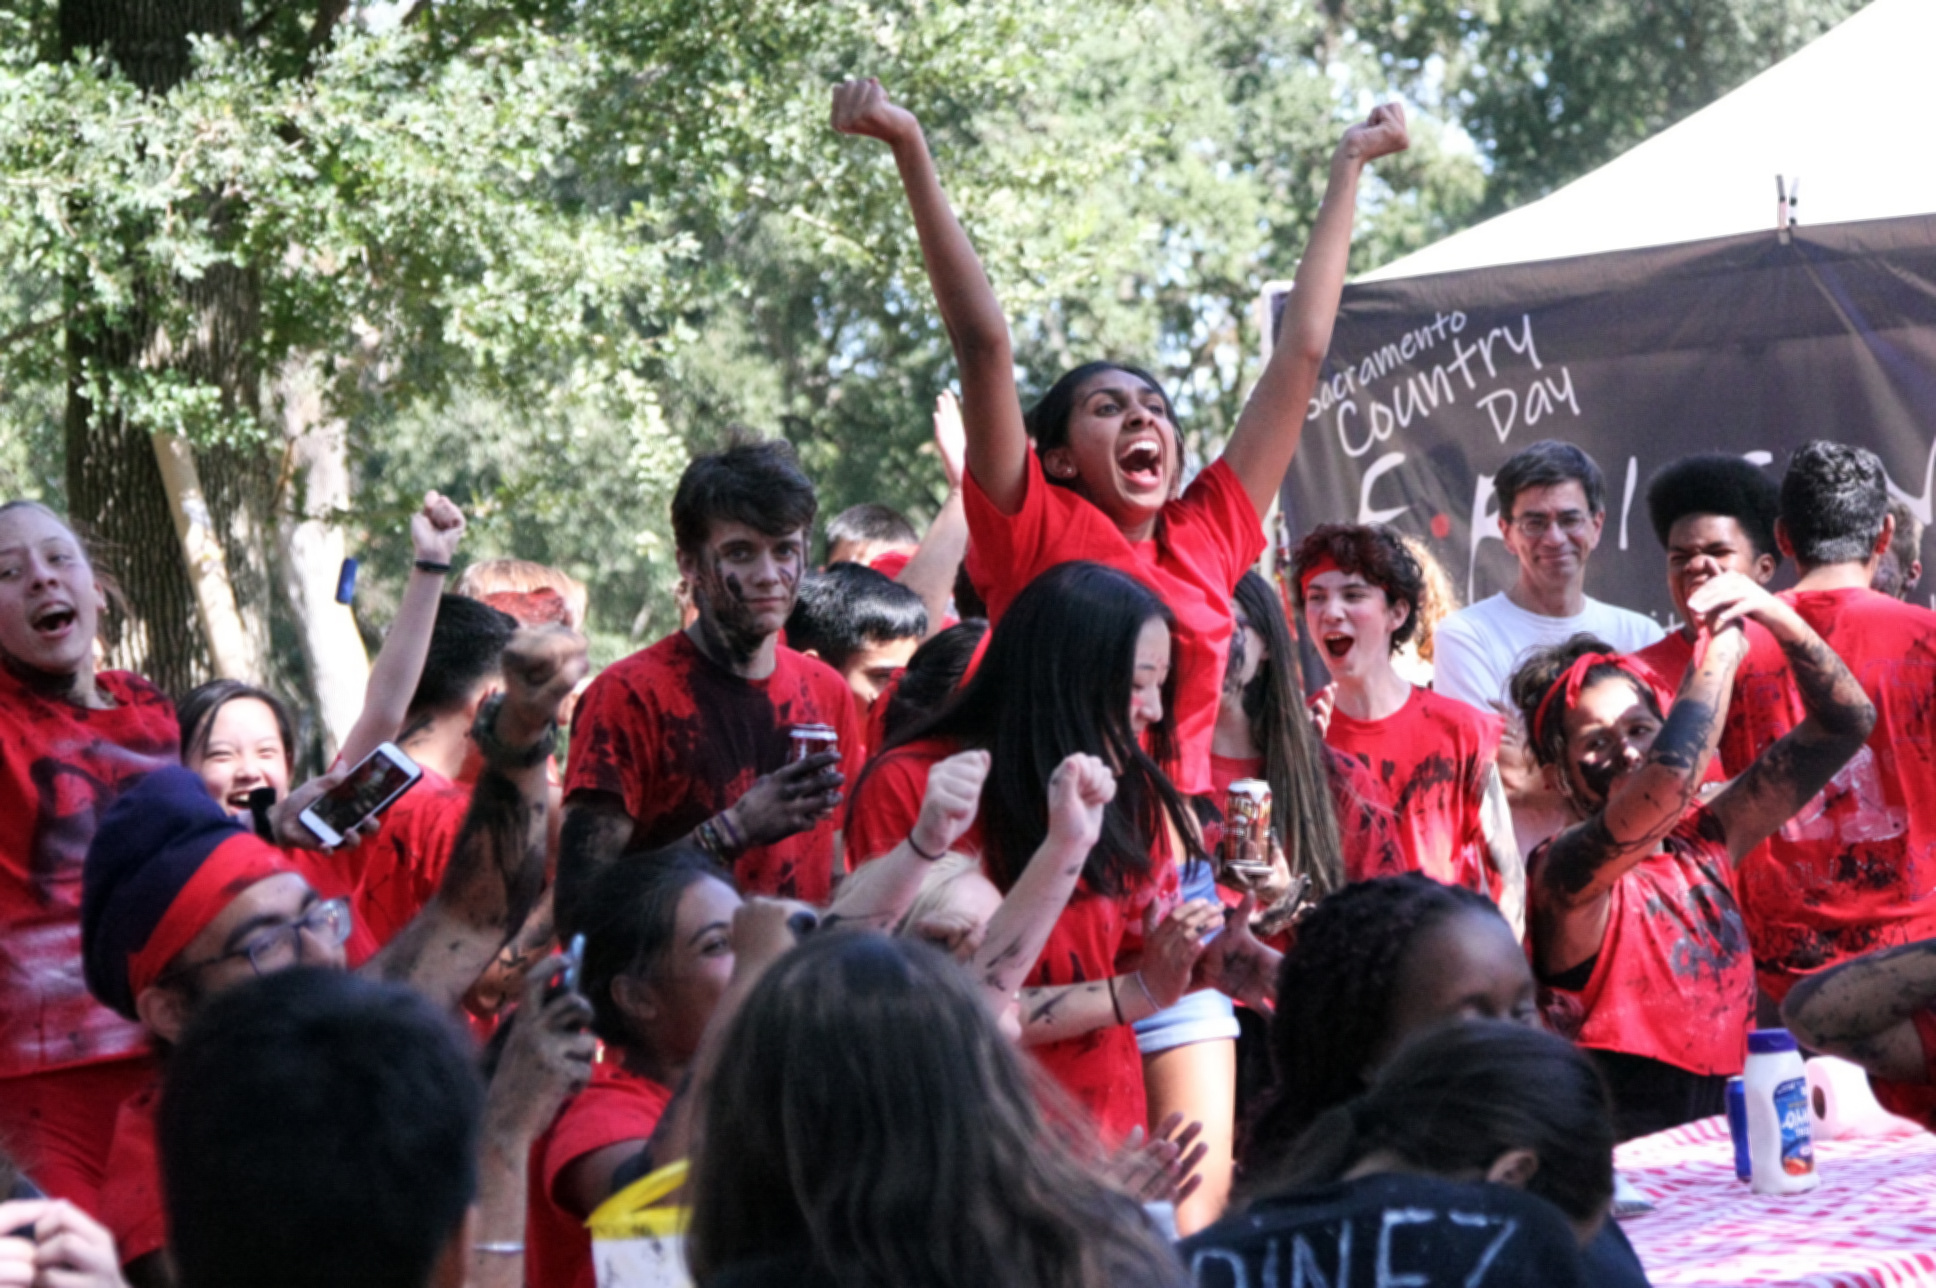 The Red Team celebrates as the verdict is announced. (Photo by Shimin Zhang)